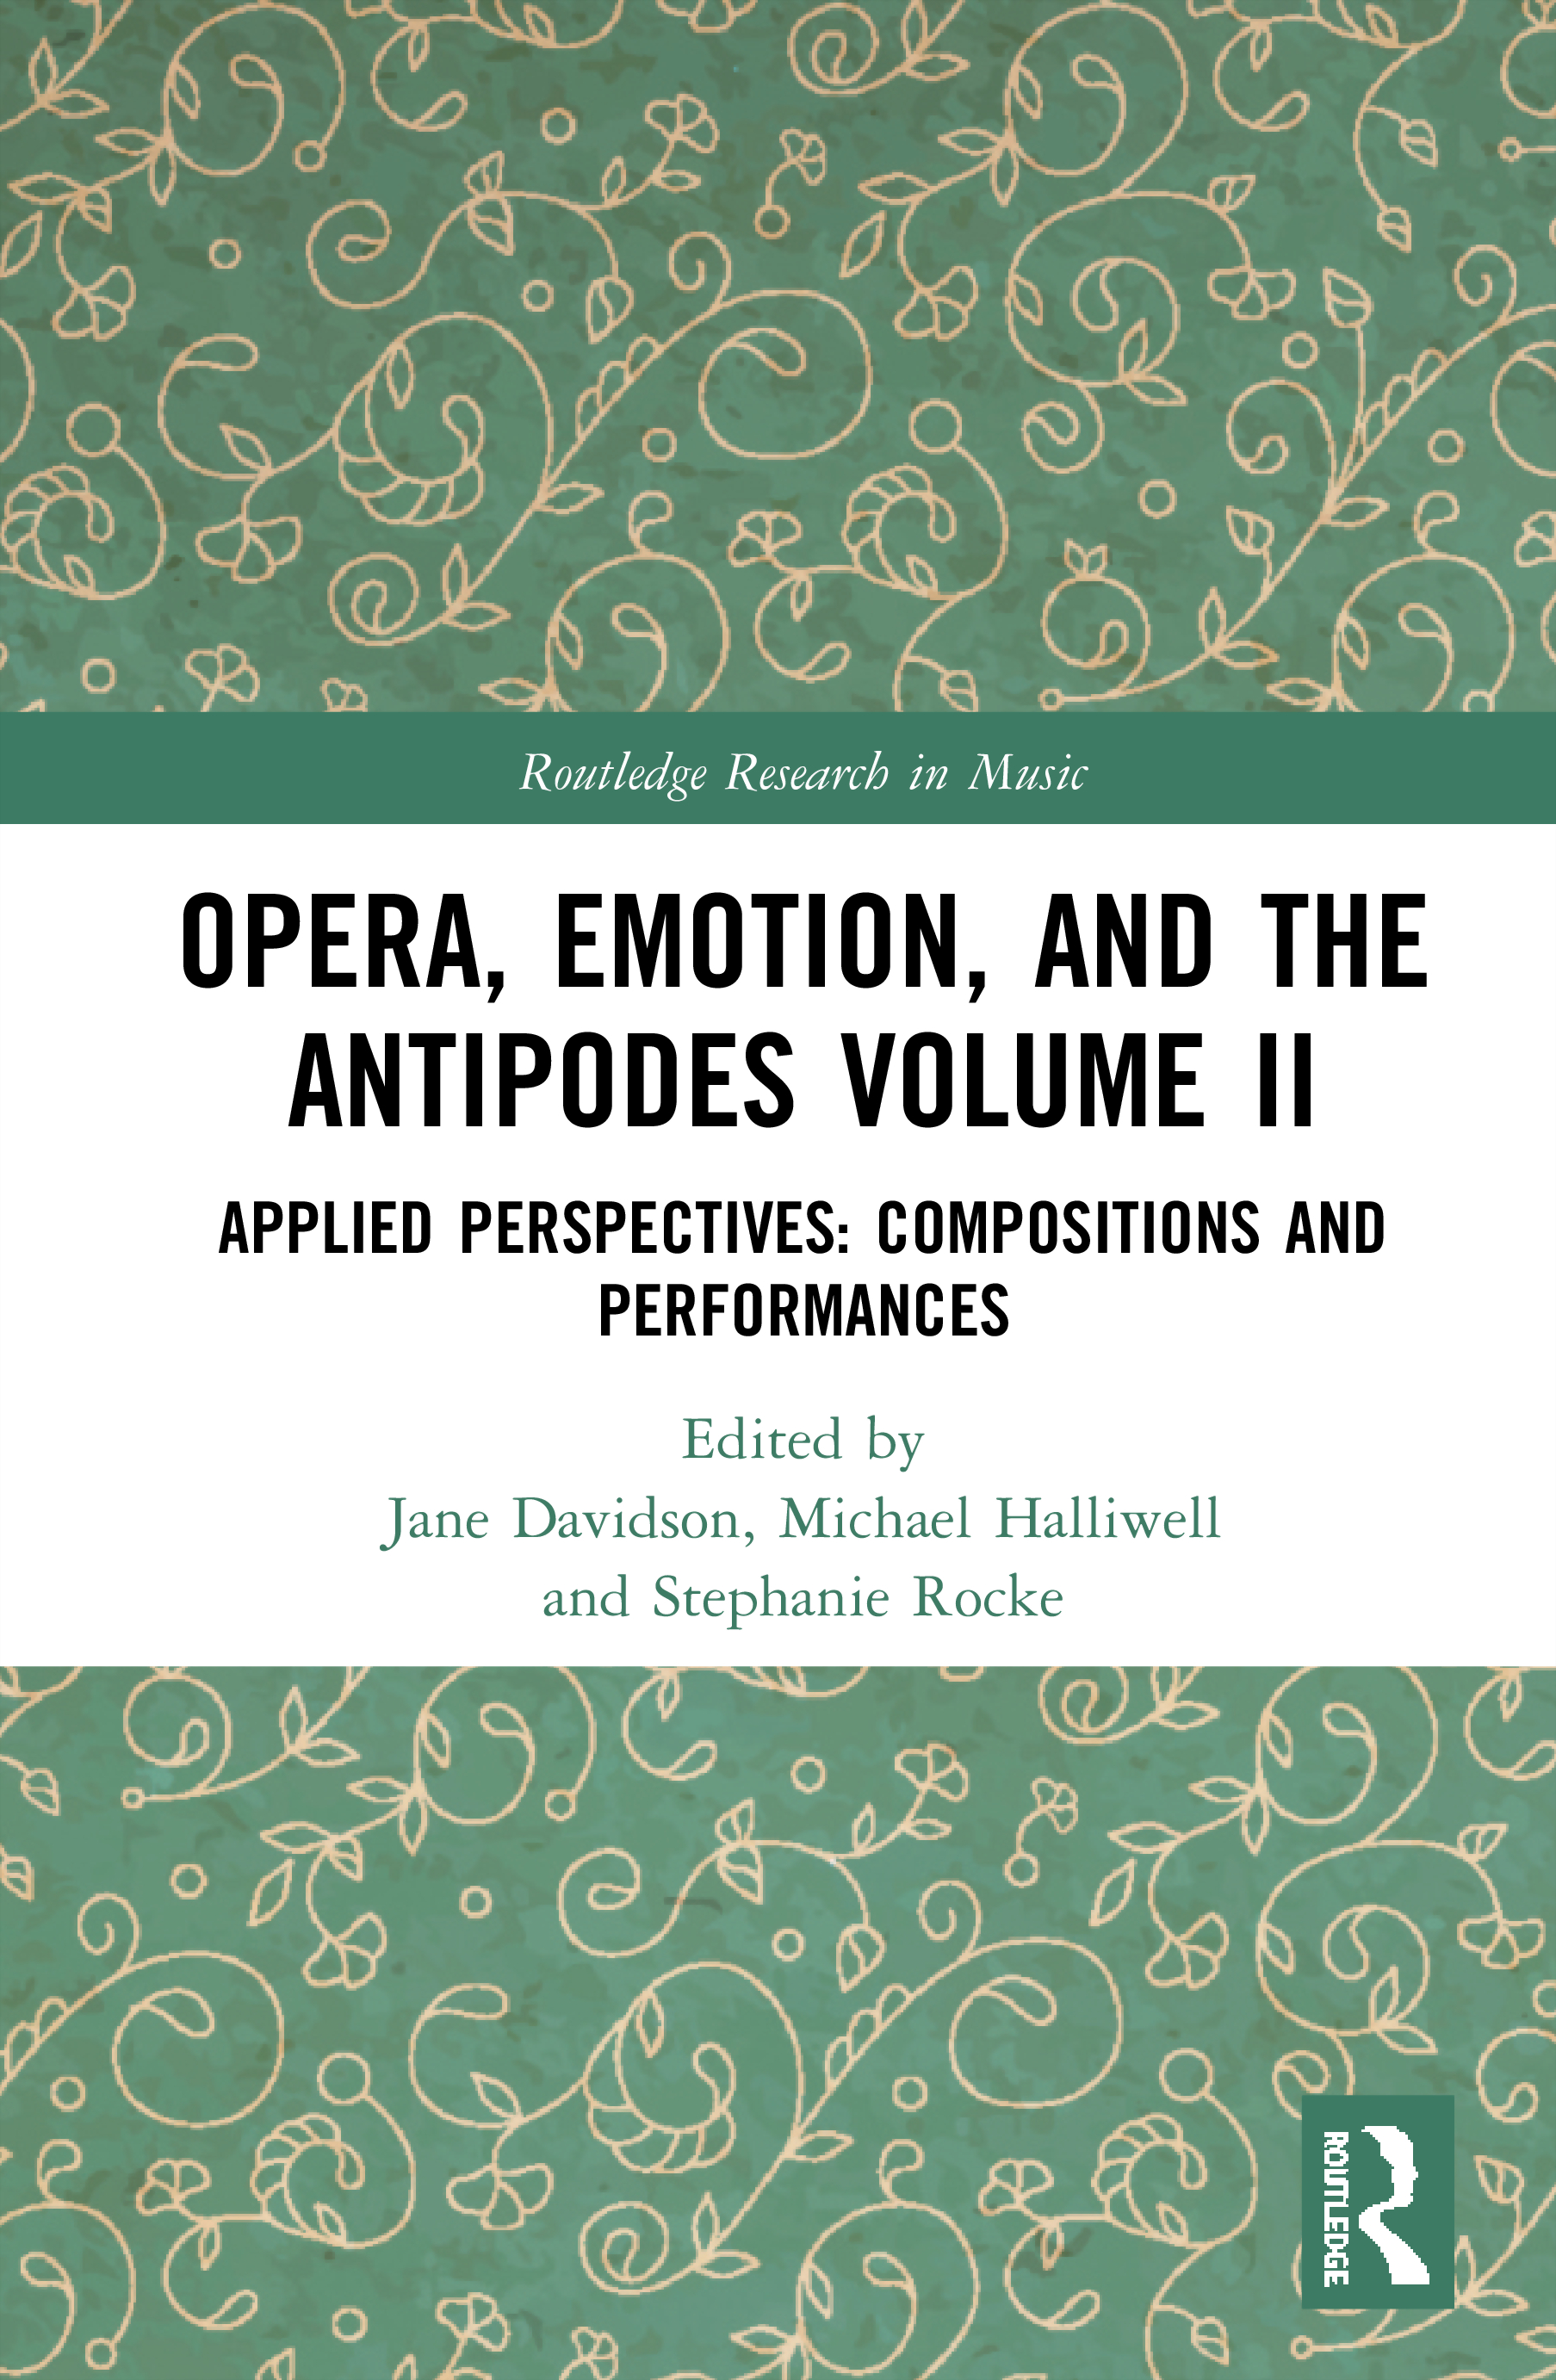 Opera, Emotion, and the Antipodes Volume II